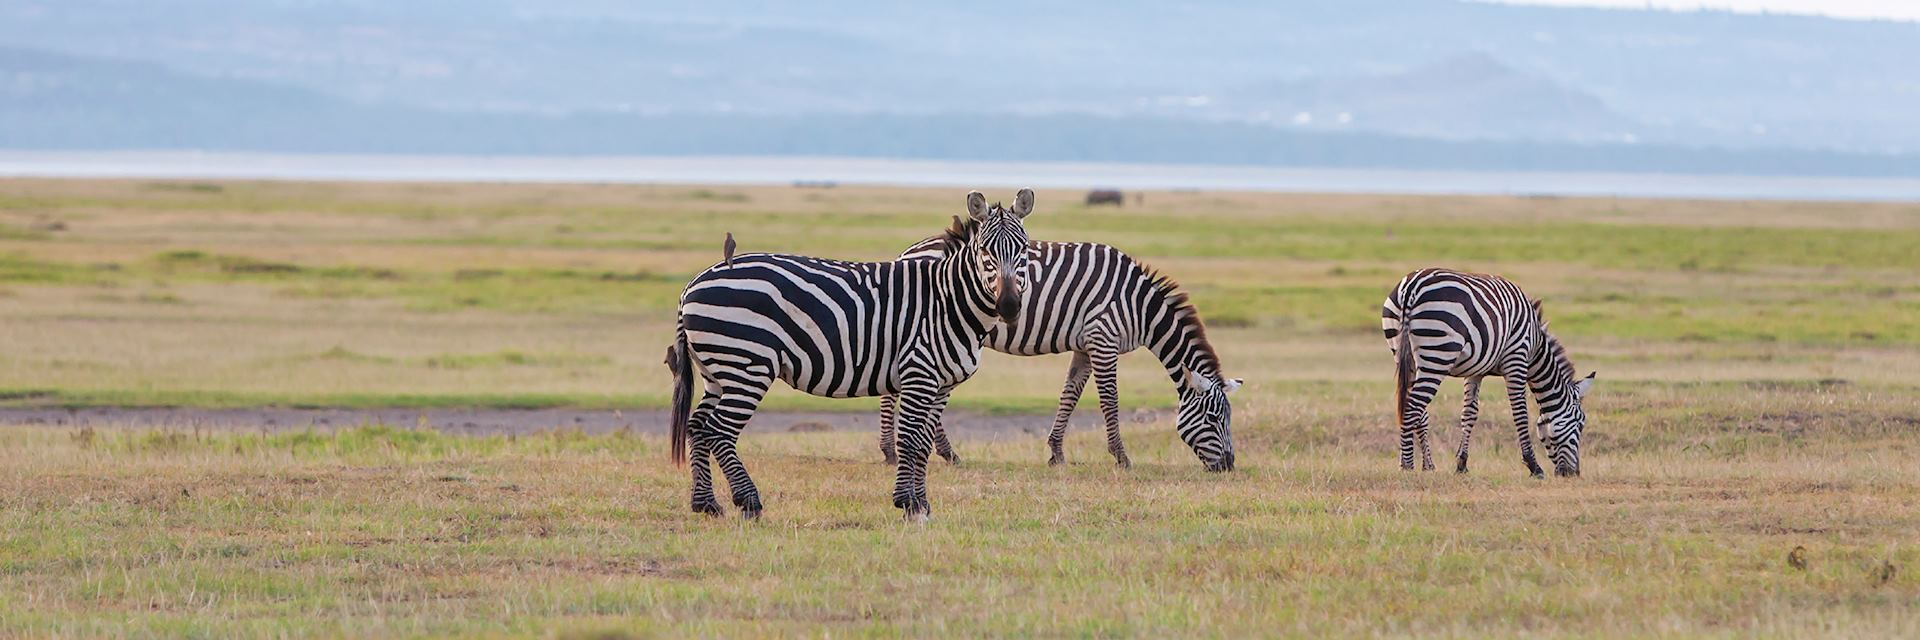 Zebra grazing in one of Zambia's national parks